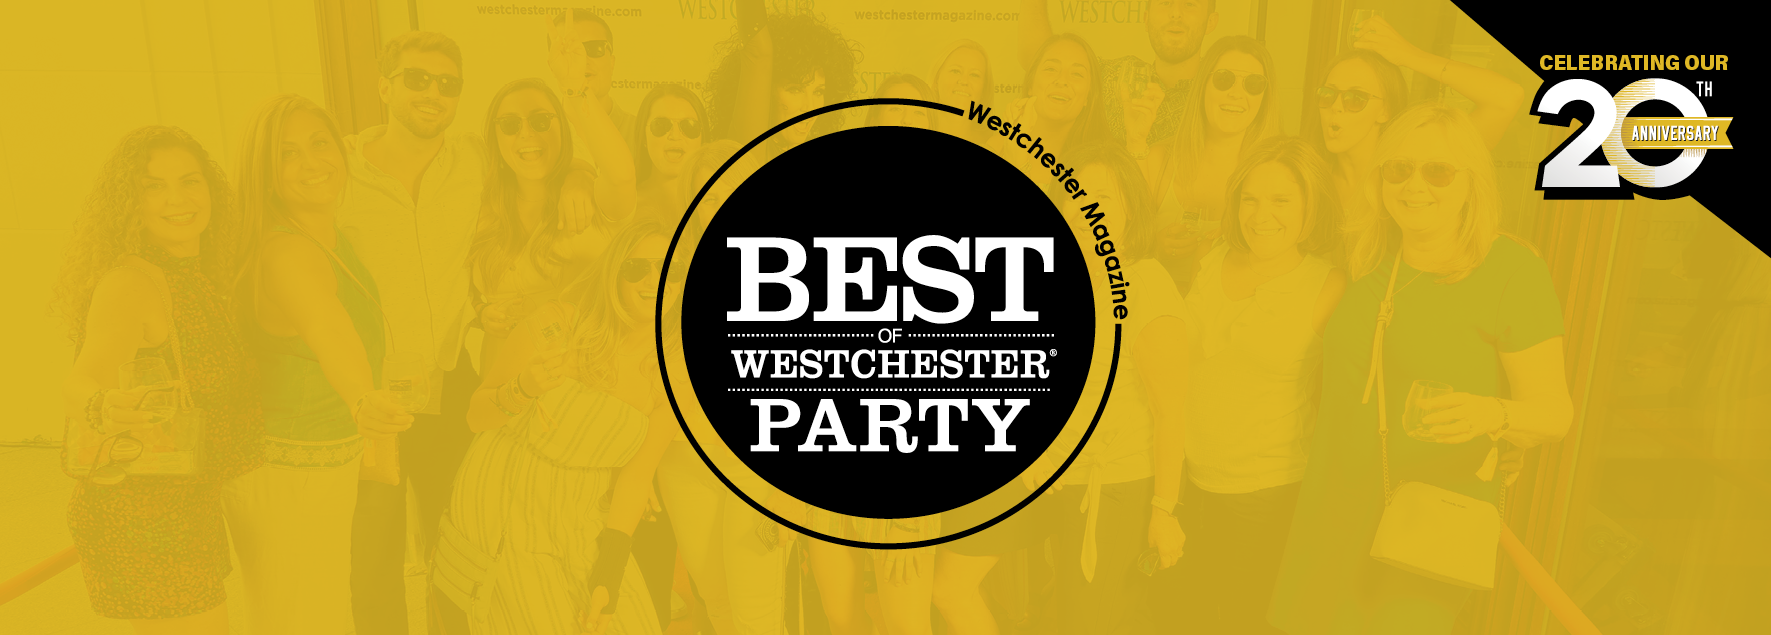 Tickets for 2019 Best of Westchester Party in New Rochelle from ShowClix